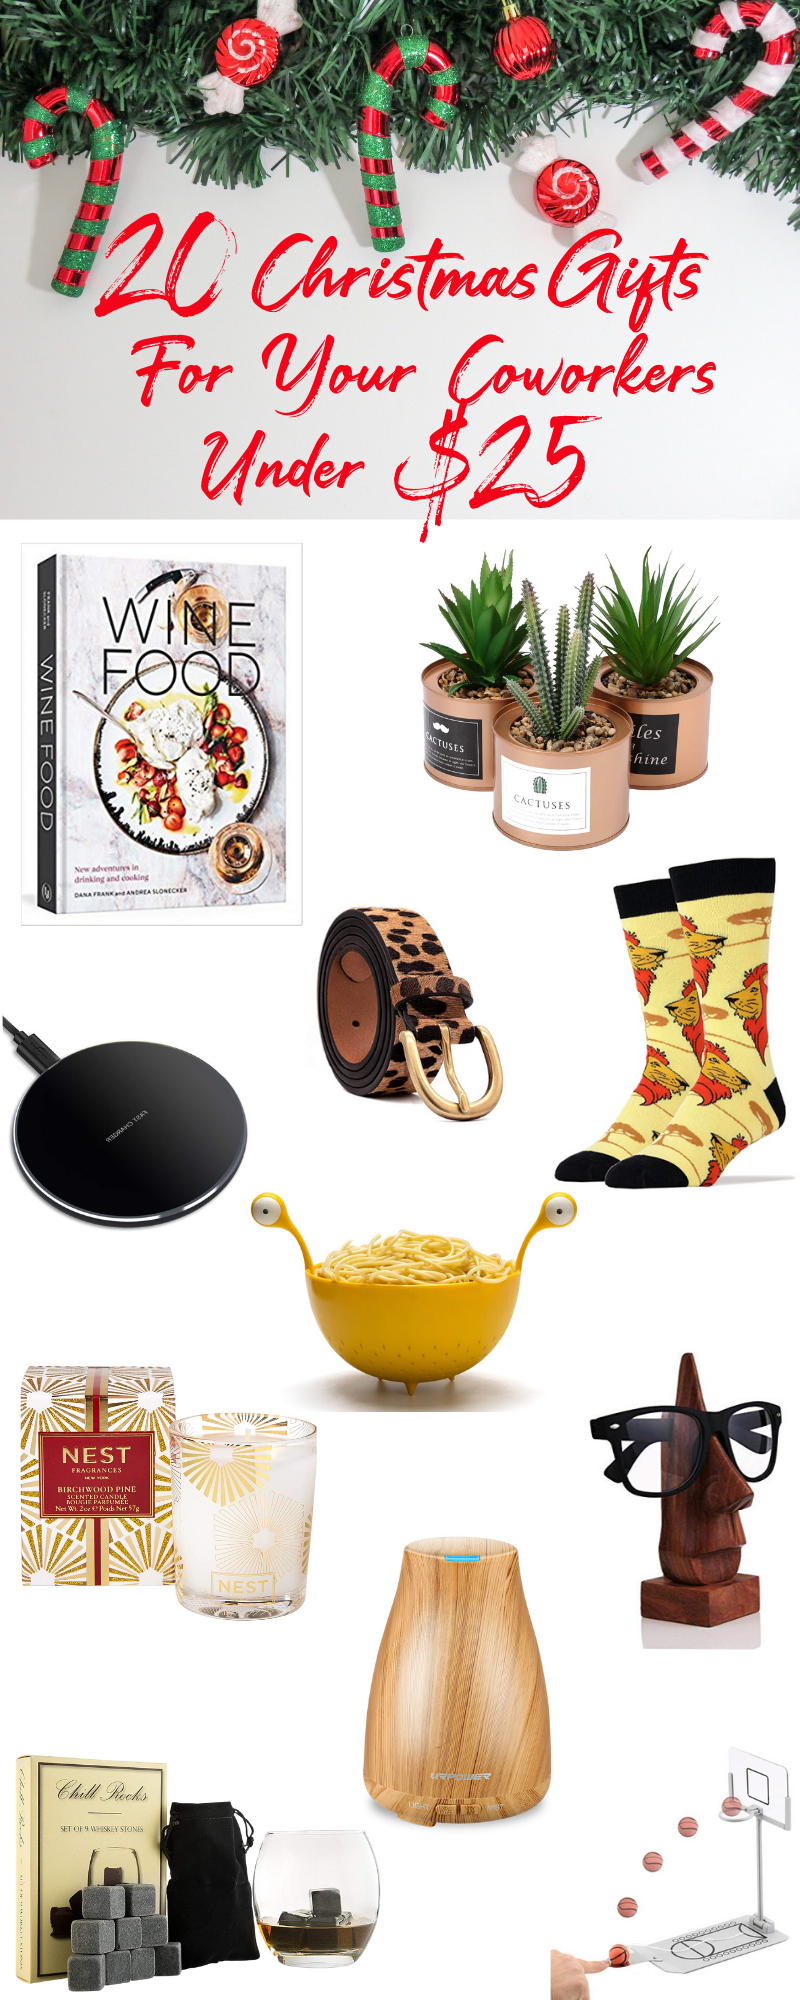 Looking for last-minute Christmas gift ideas for co-workers under $25? Whether you are looking for white elephant gift ideas or secret Santa gift ideas for your office Christmas party this gift guide will bring holiday cheer to all your co-workers. #christmasgiftideas #affordablechristmasgiftguide #christmasgiftideasforher #christmasgiftguideforhim #cheapchristmasgiftideas